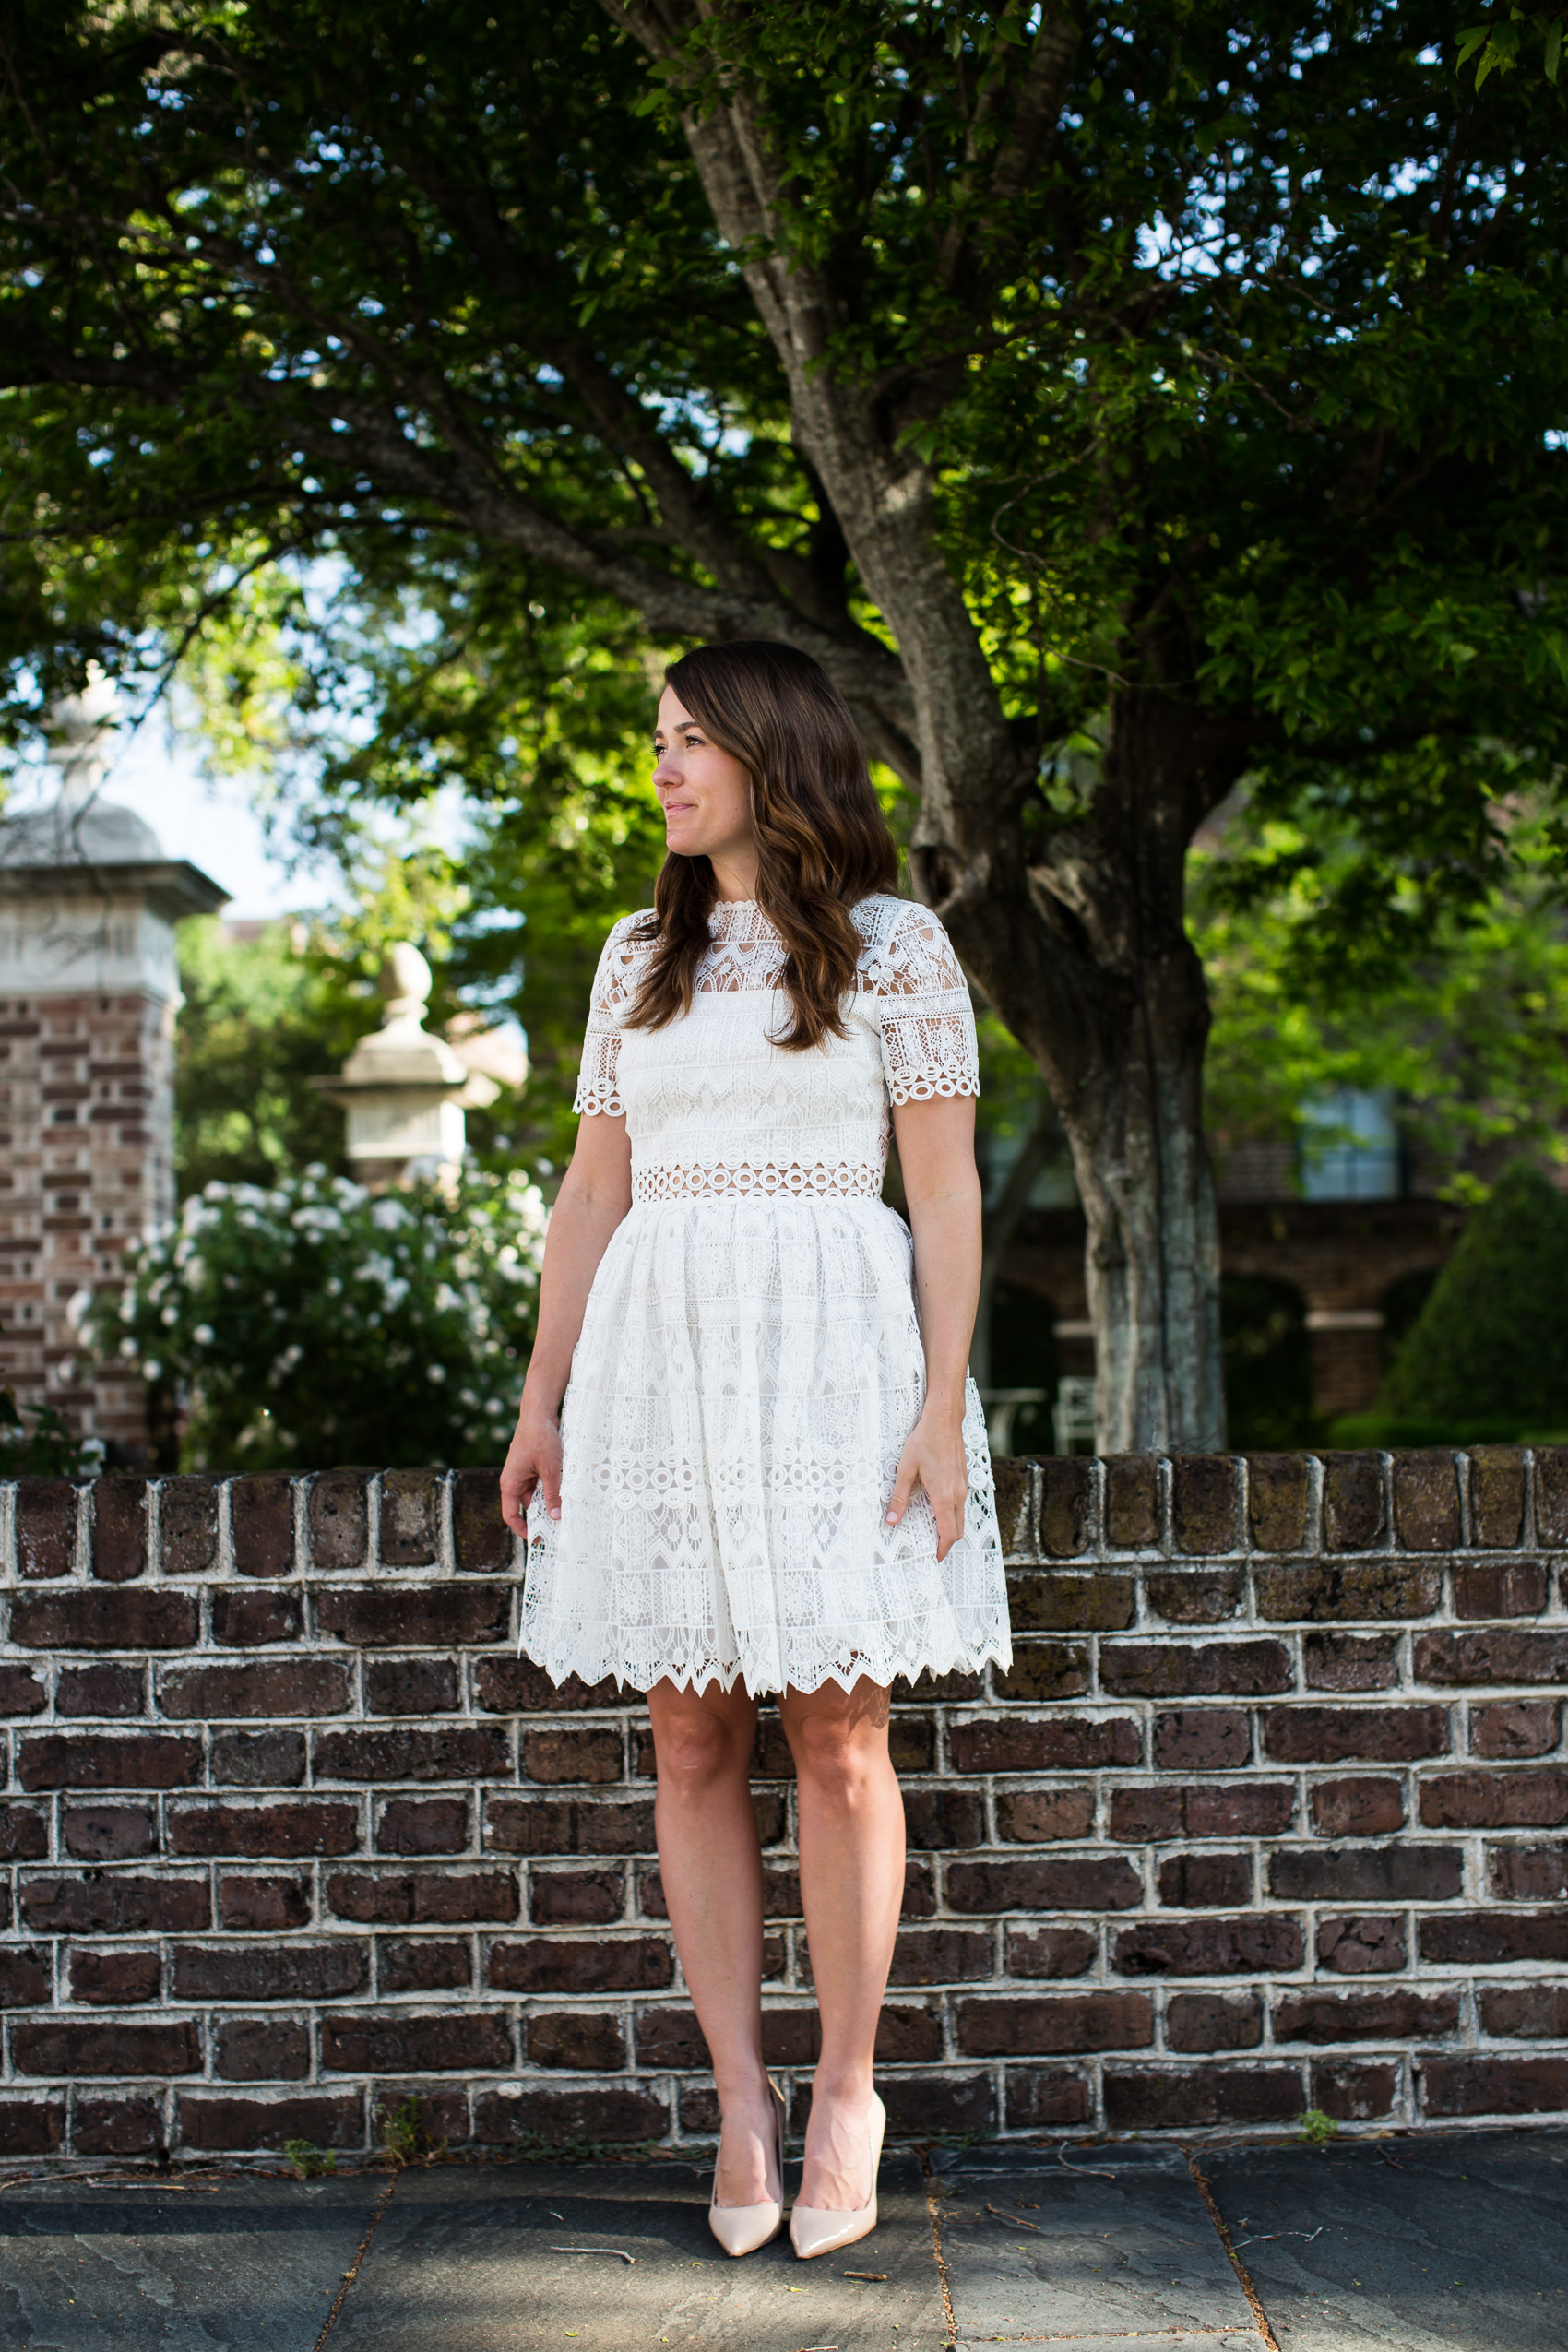 days in Charleston wearing Alexis white lace dress (15 of 19)